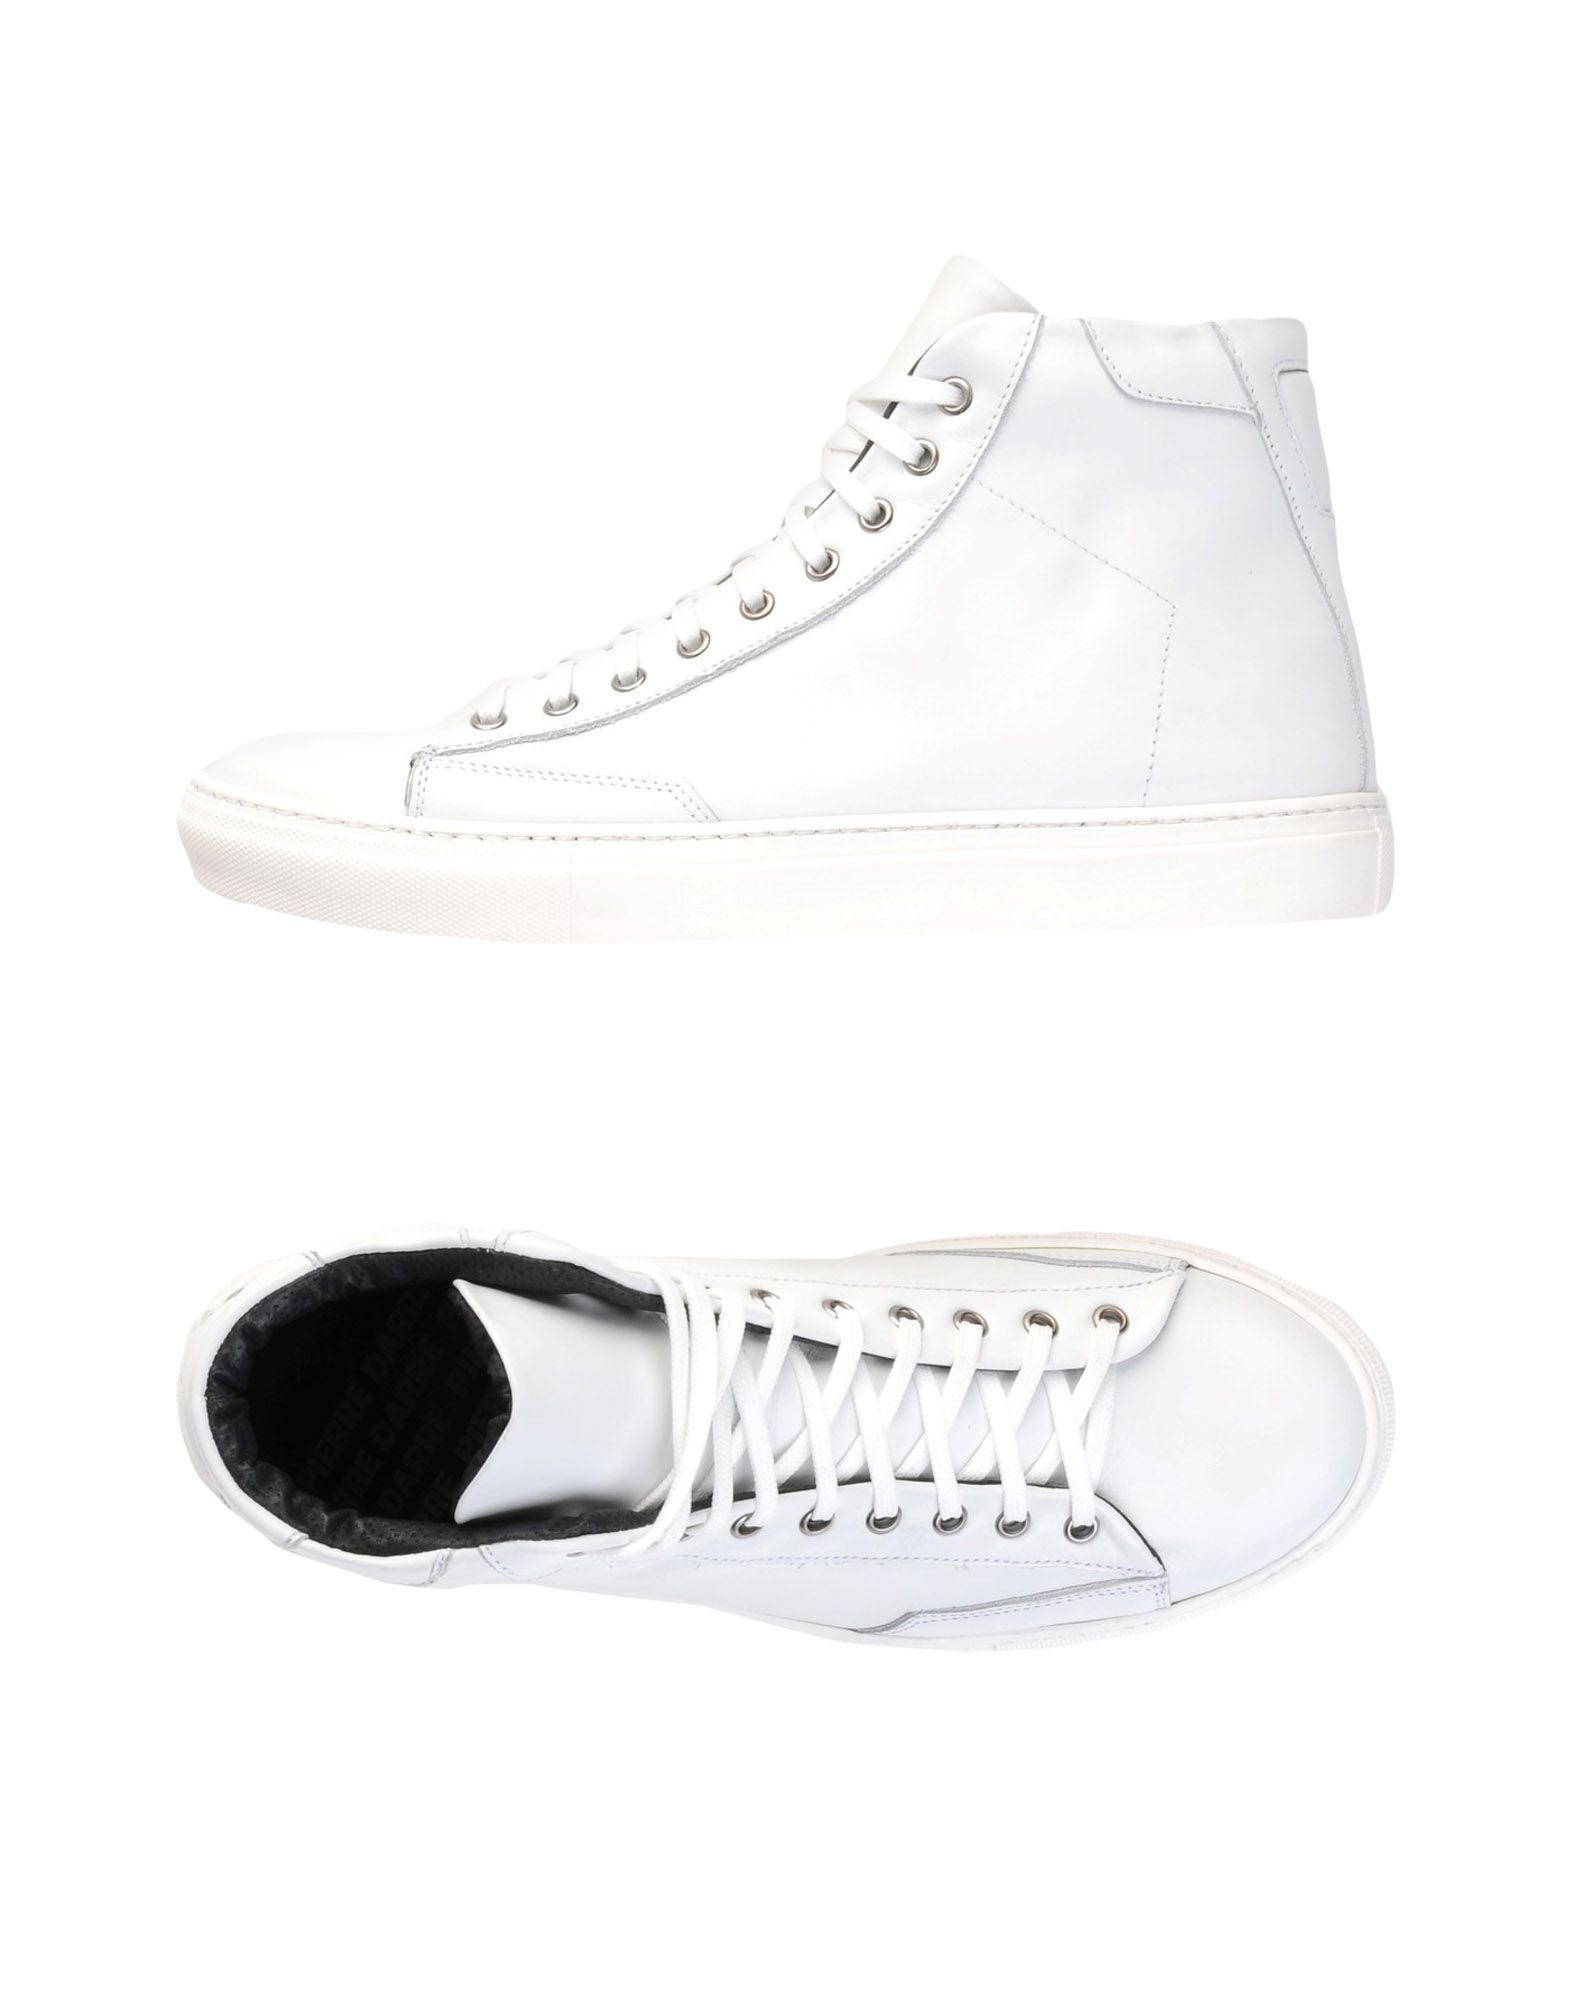 Rabatt echte Schuhe Pierre 11536215ND Darré Sneakers Herren  11536215ND Pierre bb0be6